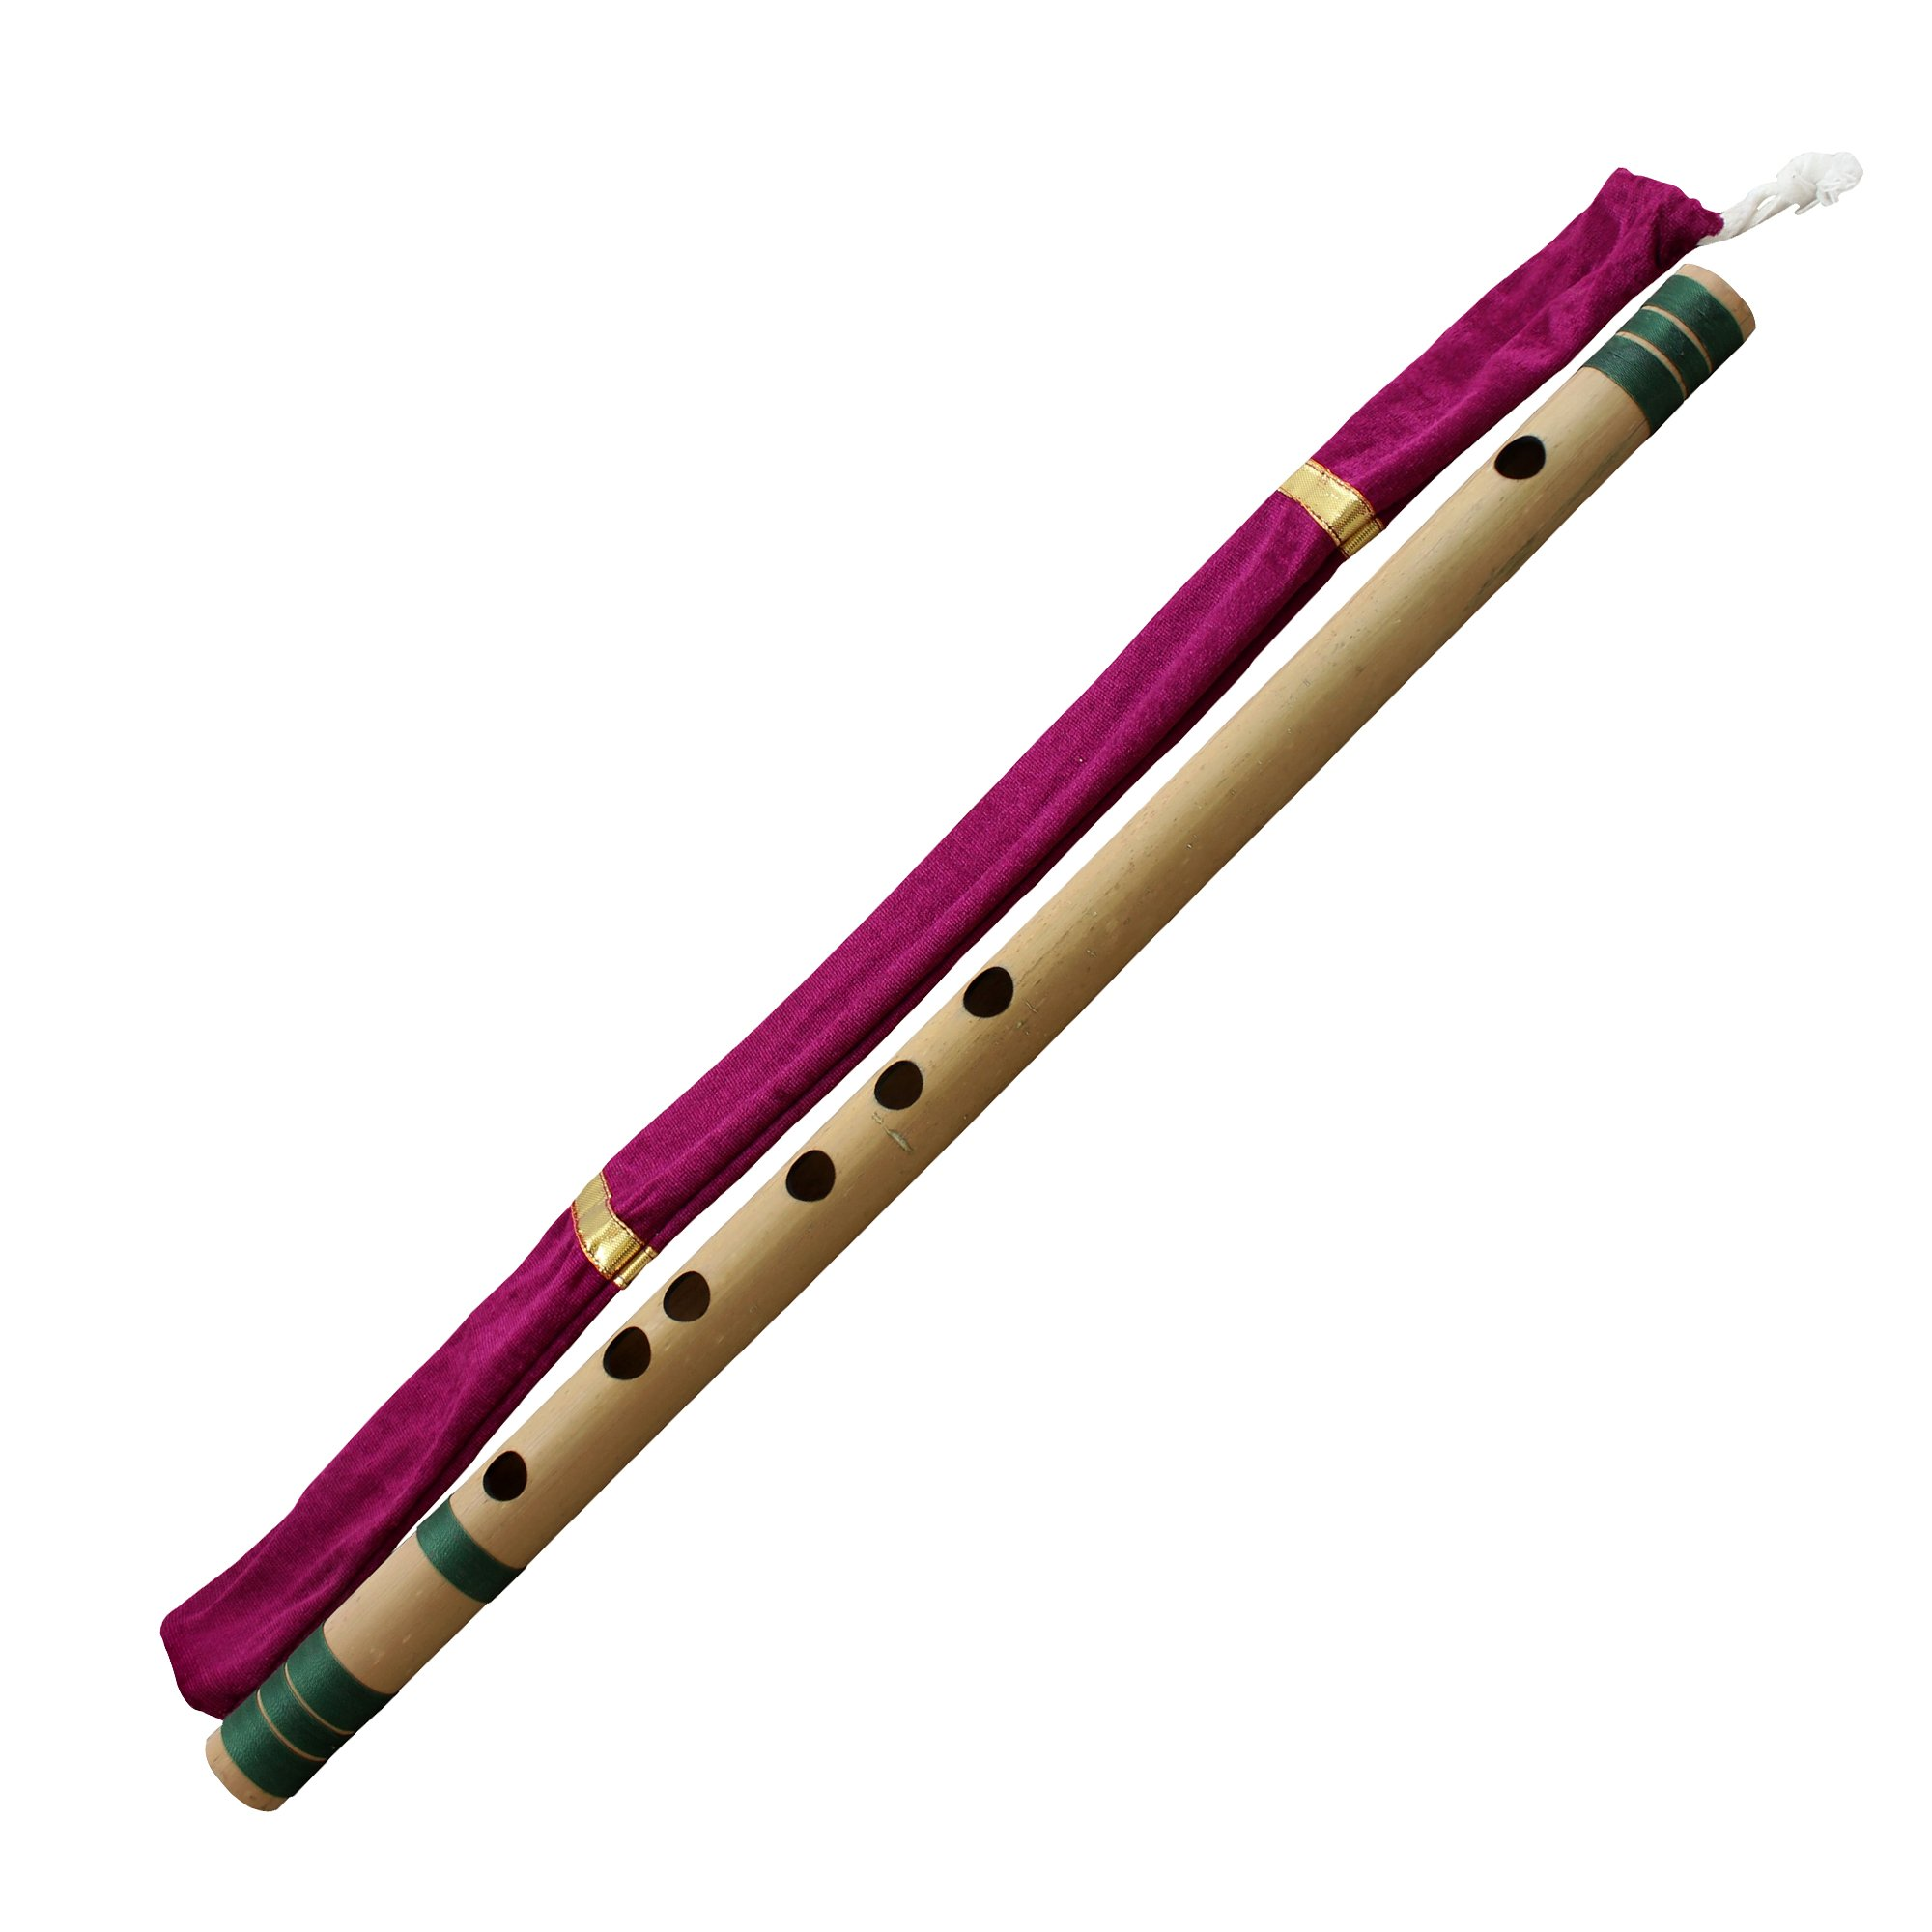 Professional Bamboo Flute Indian Flute C# Tune Wood Wind Music Instrument Length 18 Inch by RoyaltyRoute (Image #2)